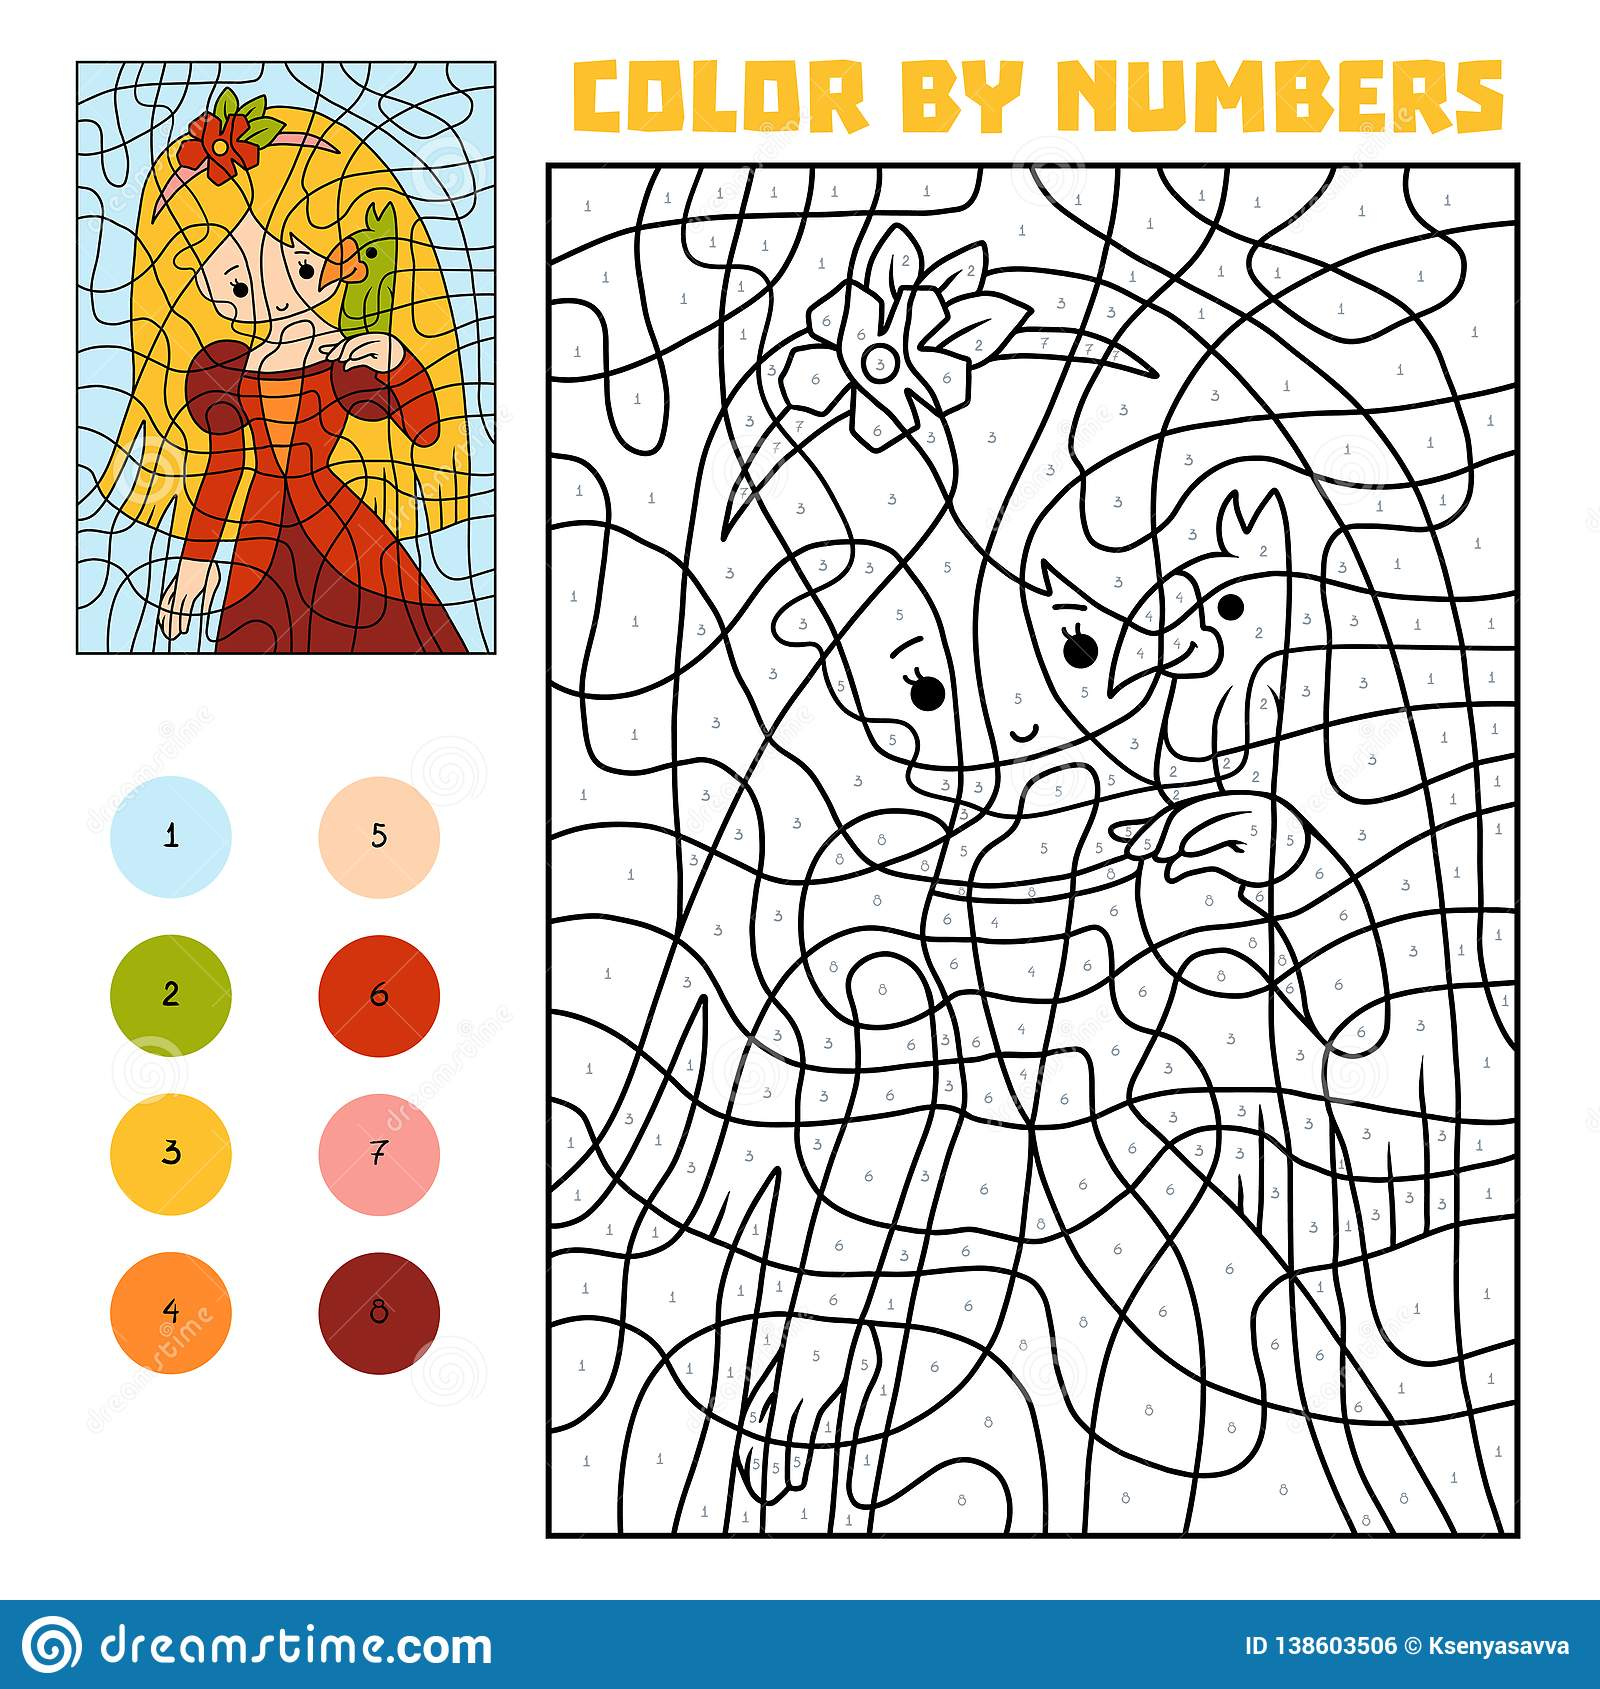 50 Great Color By Number Parrot